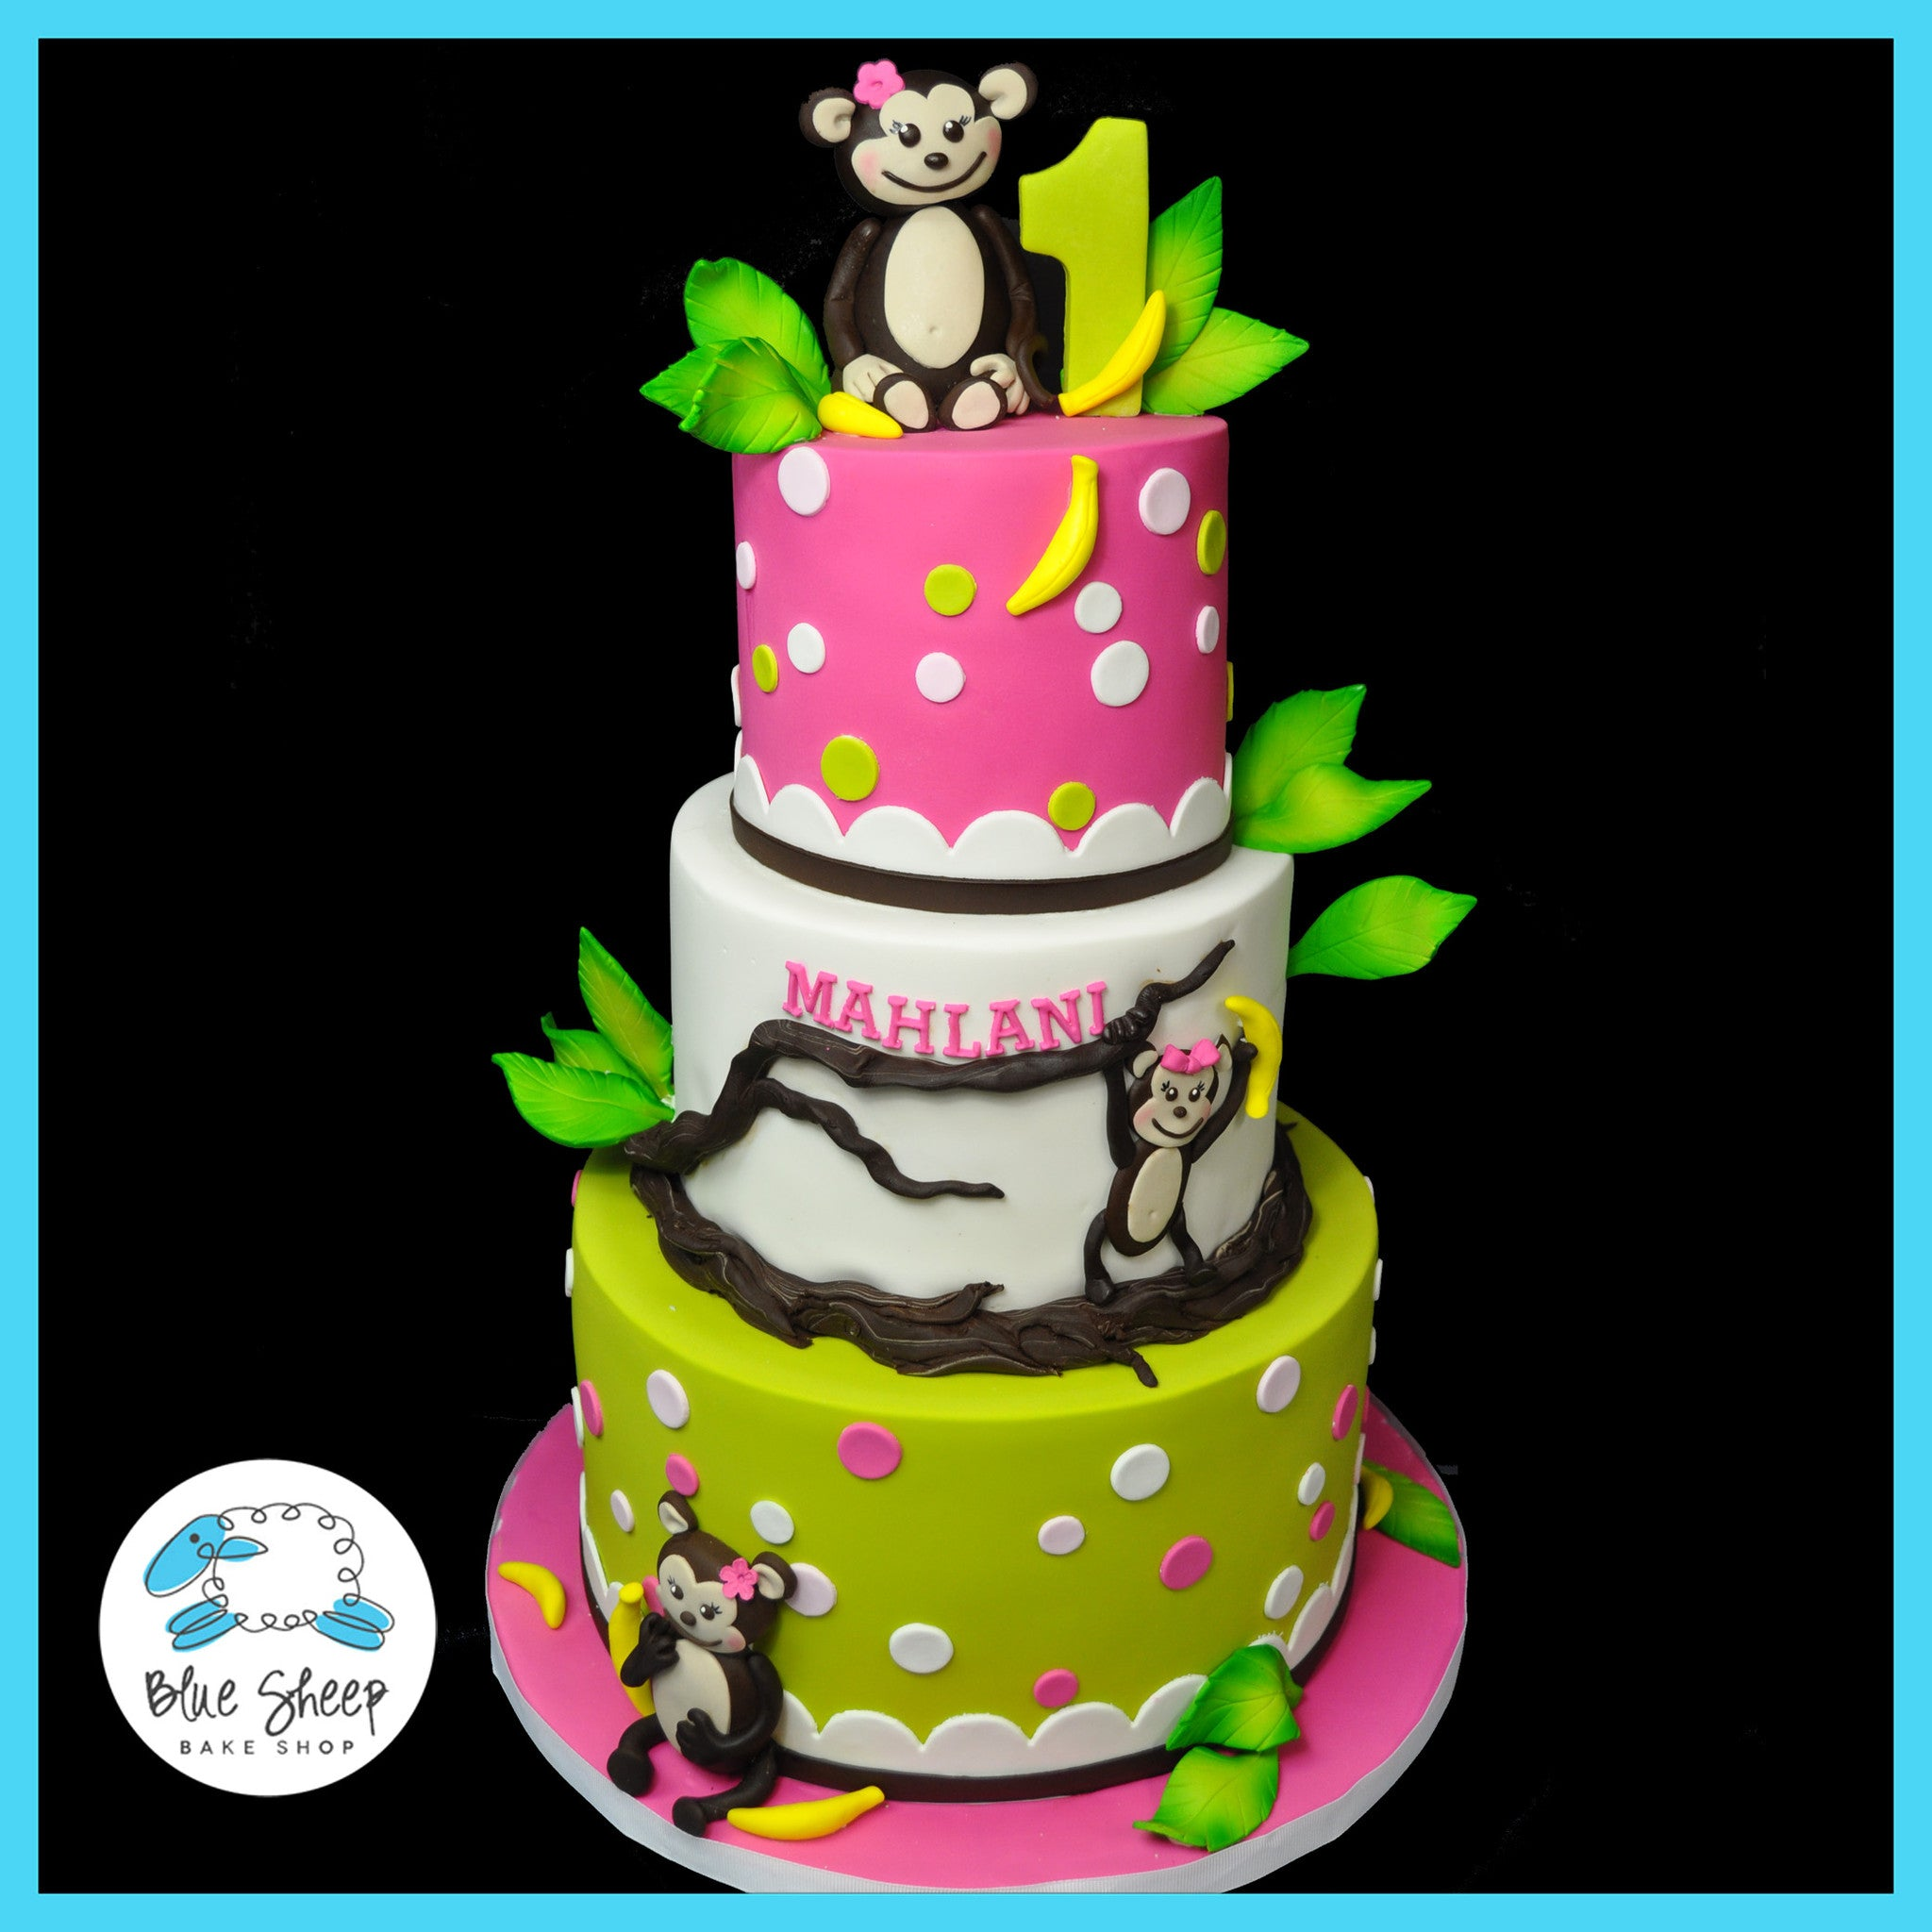 Astounding Mahlanis Jungle Monkey 1St Birthday Cake Blue Sheep Bake Shop Funny Birthday Cards Online Alyptdamsfinfo